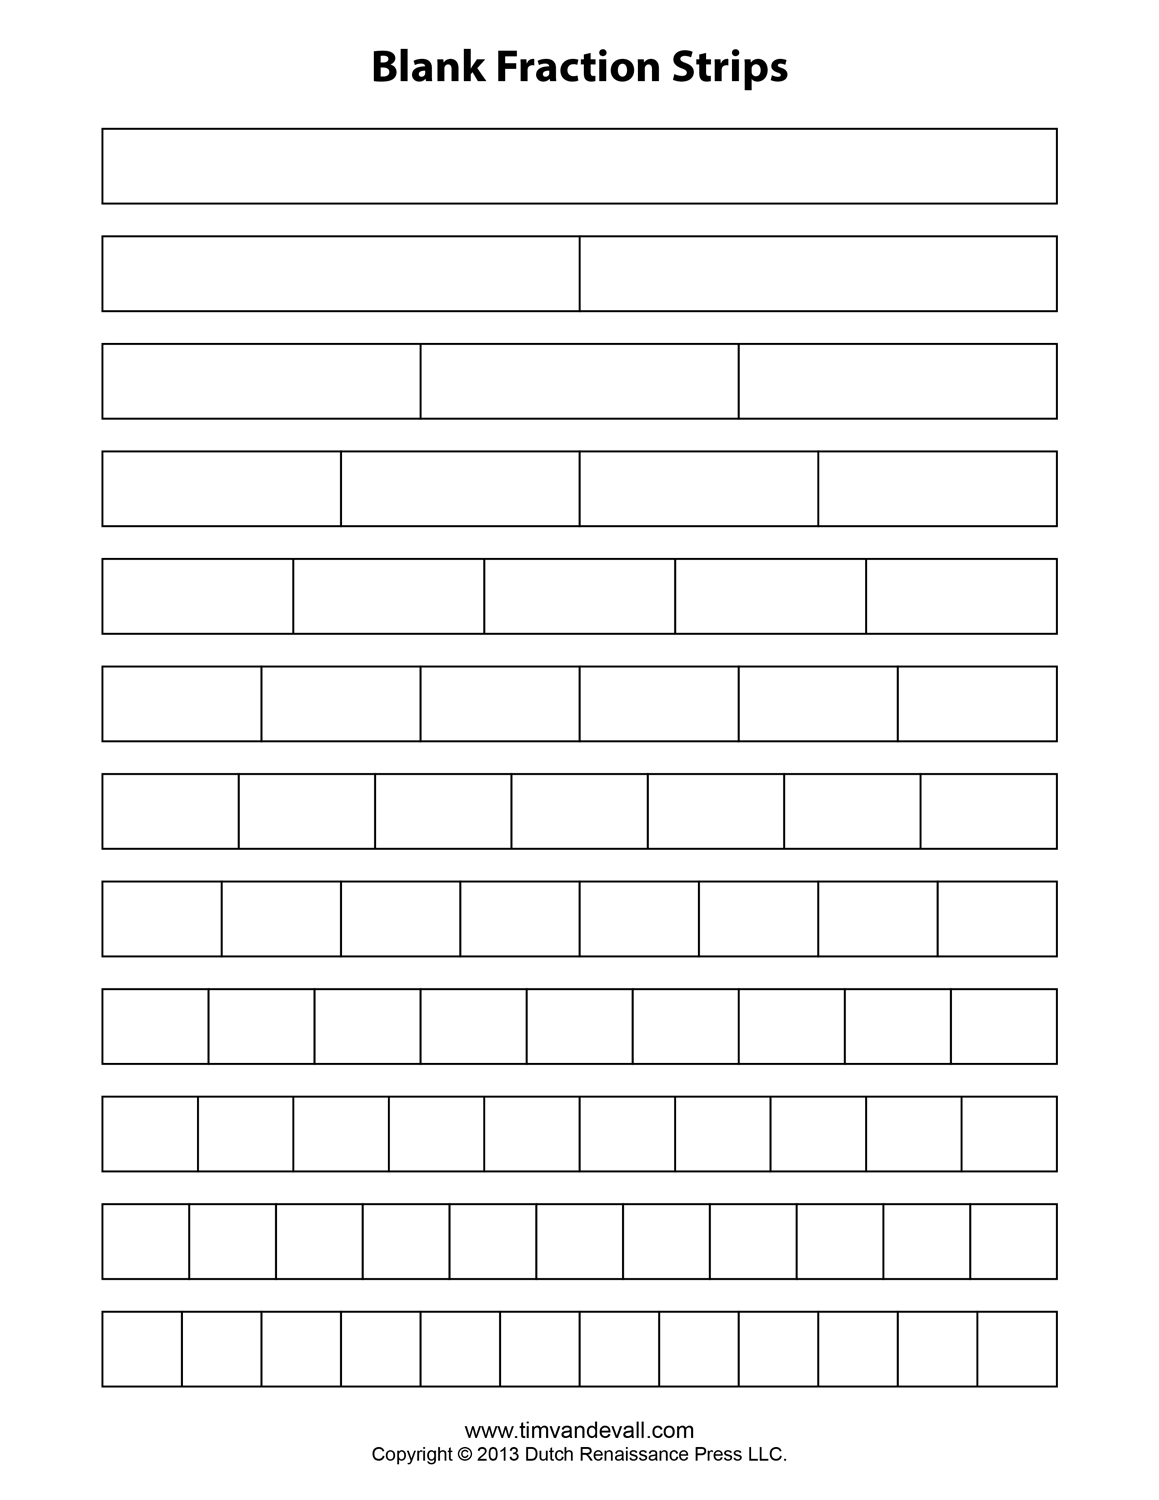 Free Printable Fraction Strips Blank Fraction Bars